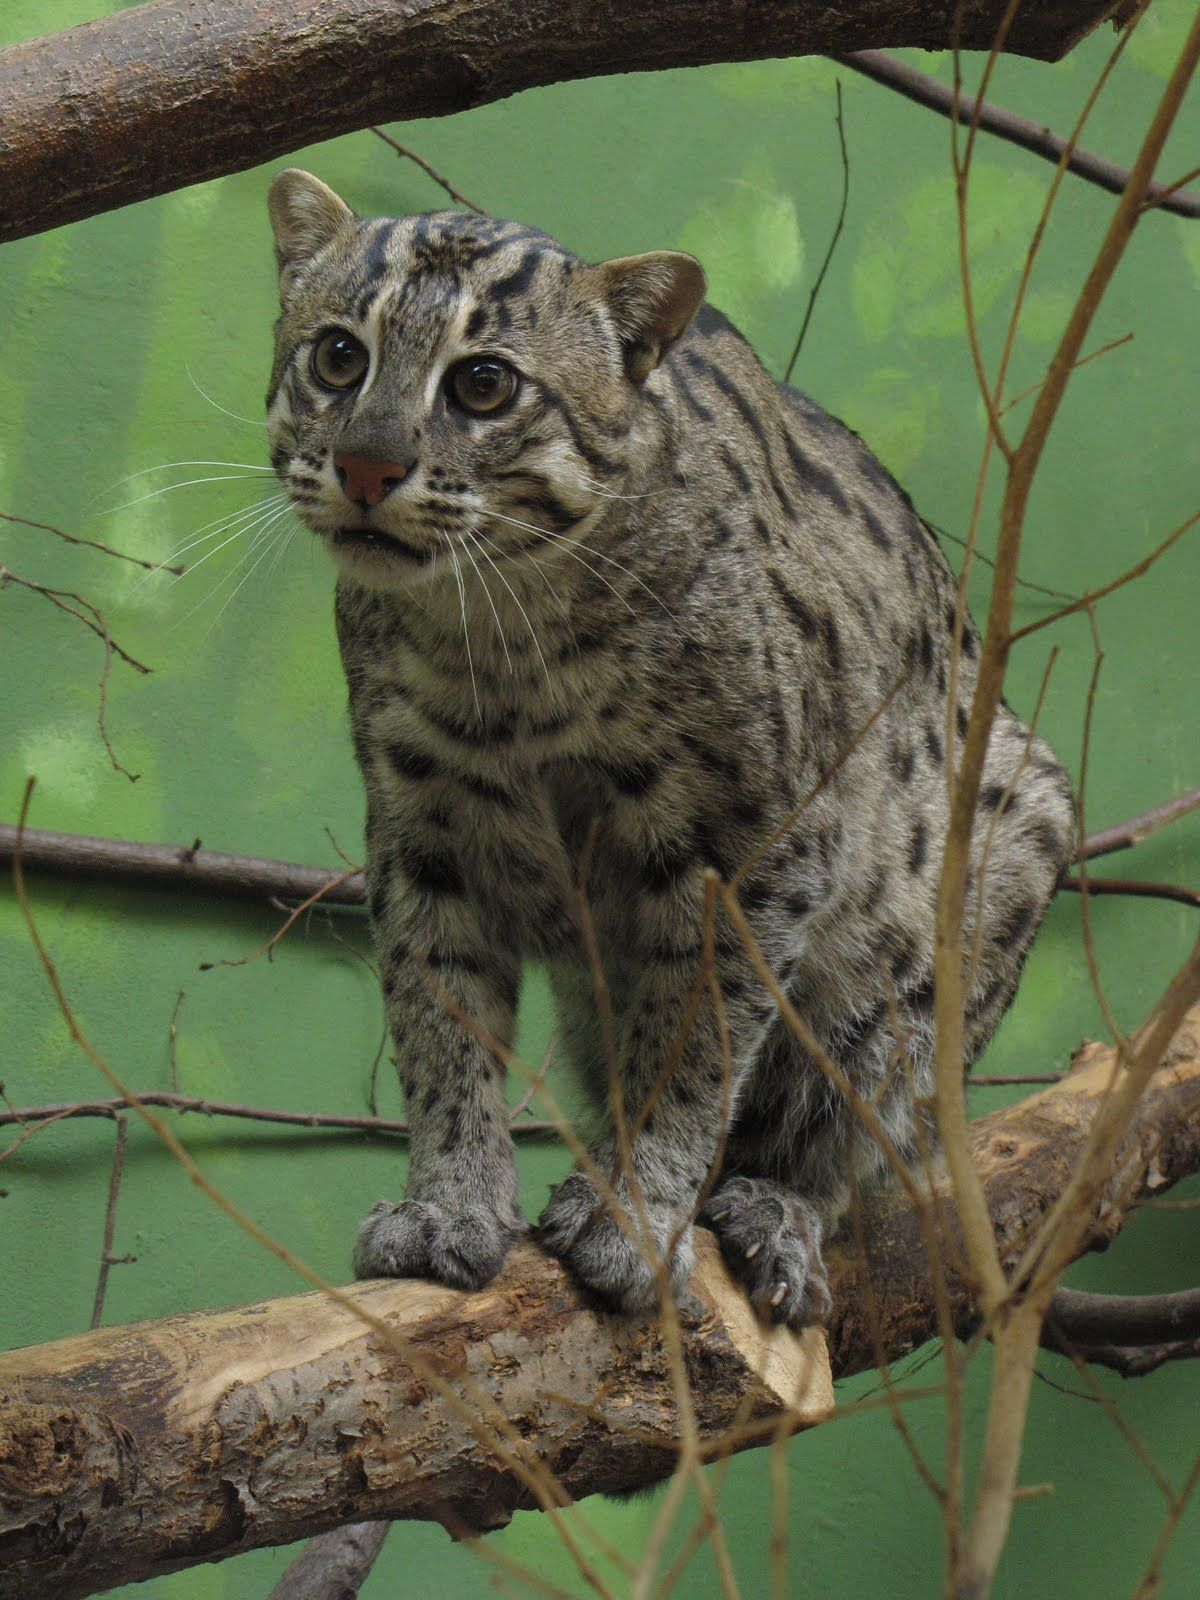 The endangered fishing cat of Southeast Asia Wild cat